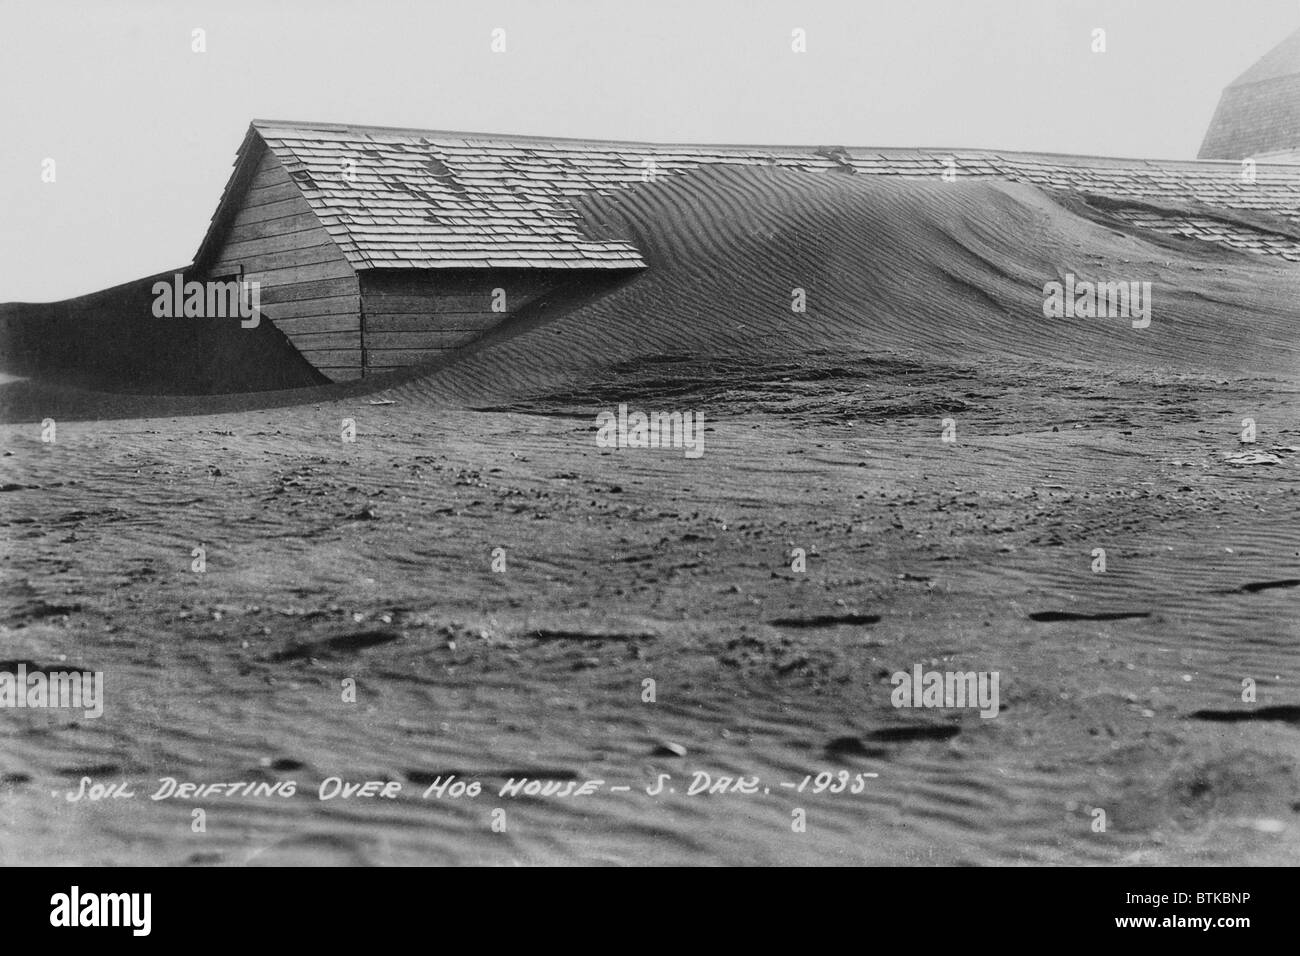 a history of dust bowl in united states of america